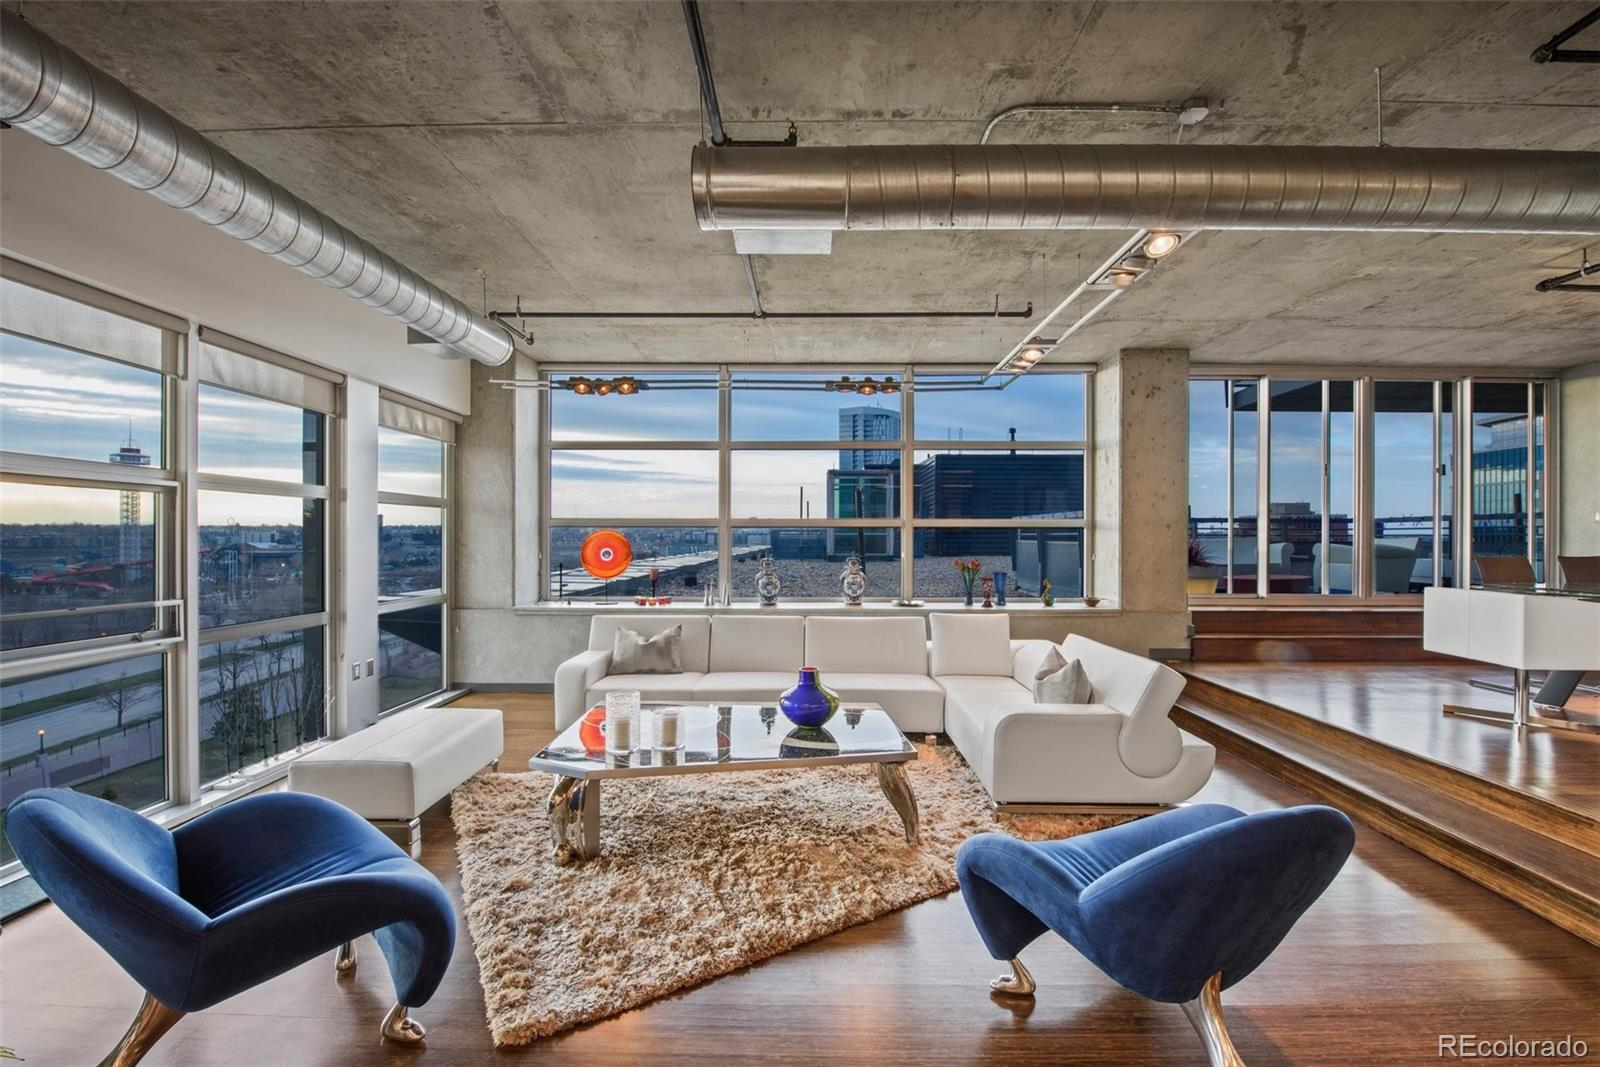 The moment you walk through the front door of this incredible loft in arguably the best building in downtown Denver, your eyes will immediately be drawn to breathtaking views of The mountains and Six Flags Elitch Gardens (soon to be River Mile)  outside of the floor to ceiling windows that surround the entire home. The expansive kitchen with large island and wide open living and dining area is the perfect space to entertain guests! Large outdoor patio and separate balcony with gas-line for a grill that over looks a park, the Cherry Creek bike and pedestrian path and the Pepsi Center. The bedrooms are on opposite sides of the 2401 sq feet of living space offering plenty of privacy for owner and guests. The master suite is separated from the rest of the home by a partial rotating TV wall to allow you to watch a show or aGame on the sofa or snuggle up to a movie in bed. Two large walk in closets and a spa-like master bath with large jacuzzi soaking tub and steam shower make you feel like you're living in a luxury hotel. The high end custom office furniture fits perfectly and is included in the purchase of the home. This is arguably the most dog-friendly building downtown with a wonderful park right outside where people gather with their pups all day long.  Two prime parking spots in the temperature controlled, secure underground garage. Quiet business center is perfect for those who work from home and want to get out of the unit every once in a while. 3 block to Union Station and Whole Foods and 2 blocks to Colorado Athletic Club. Dozens of the cities best restaurants are within easy walking distance. 24 hour security and so much more!